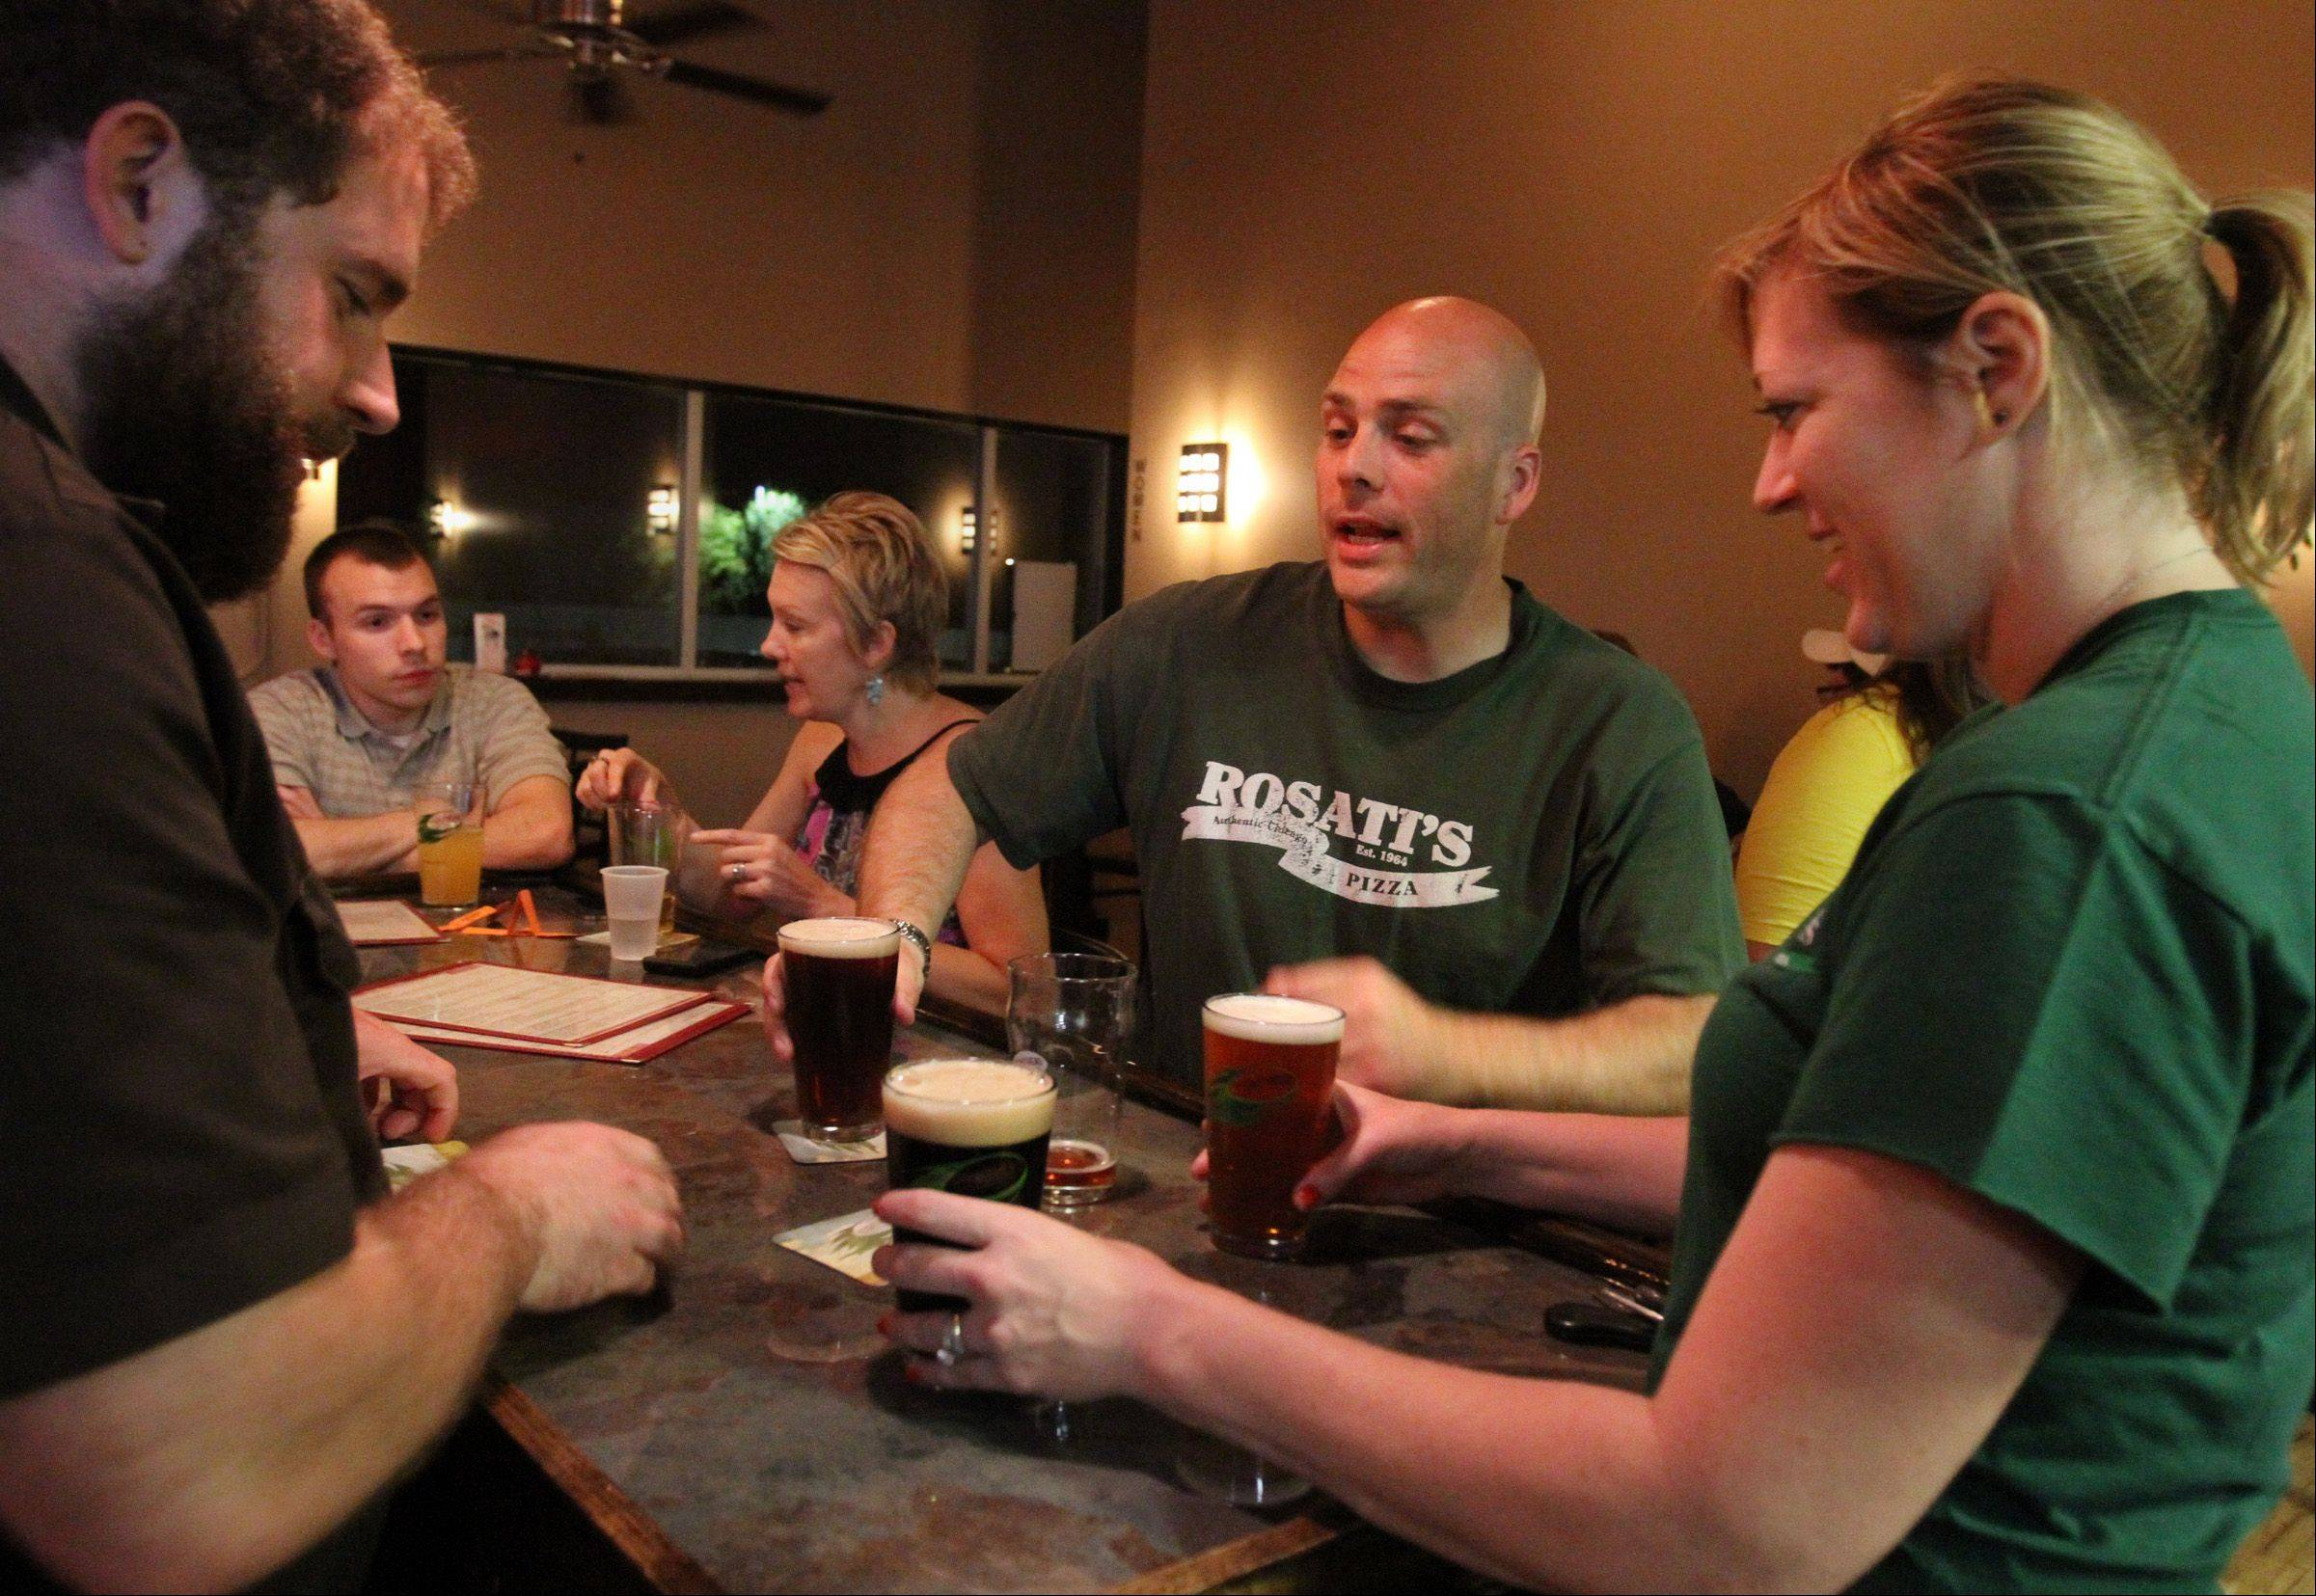 Tighthead Brewing Company tap room manager Patrick Whisler, left, serves Pat O'Connell and Abby Hickman, both of Libertyville.